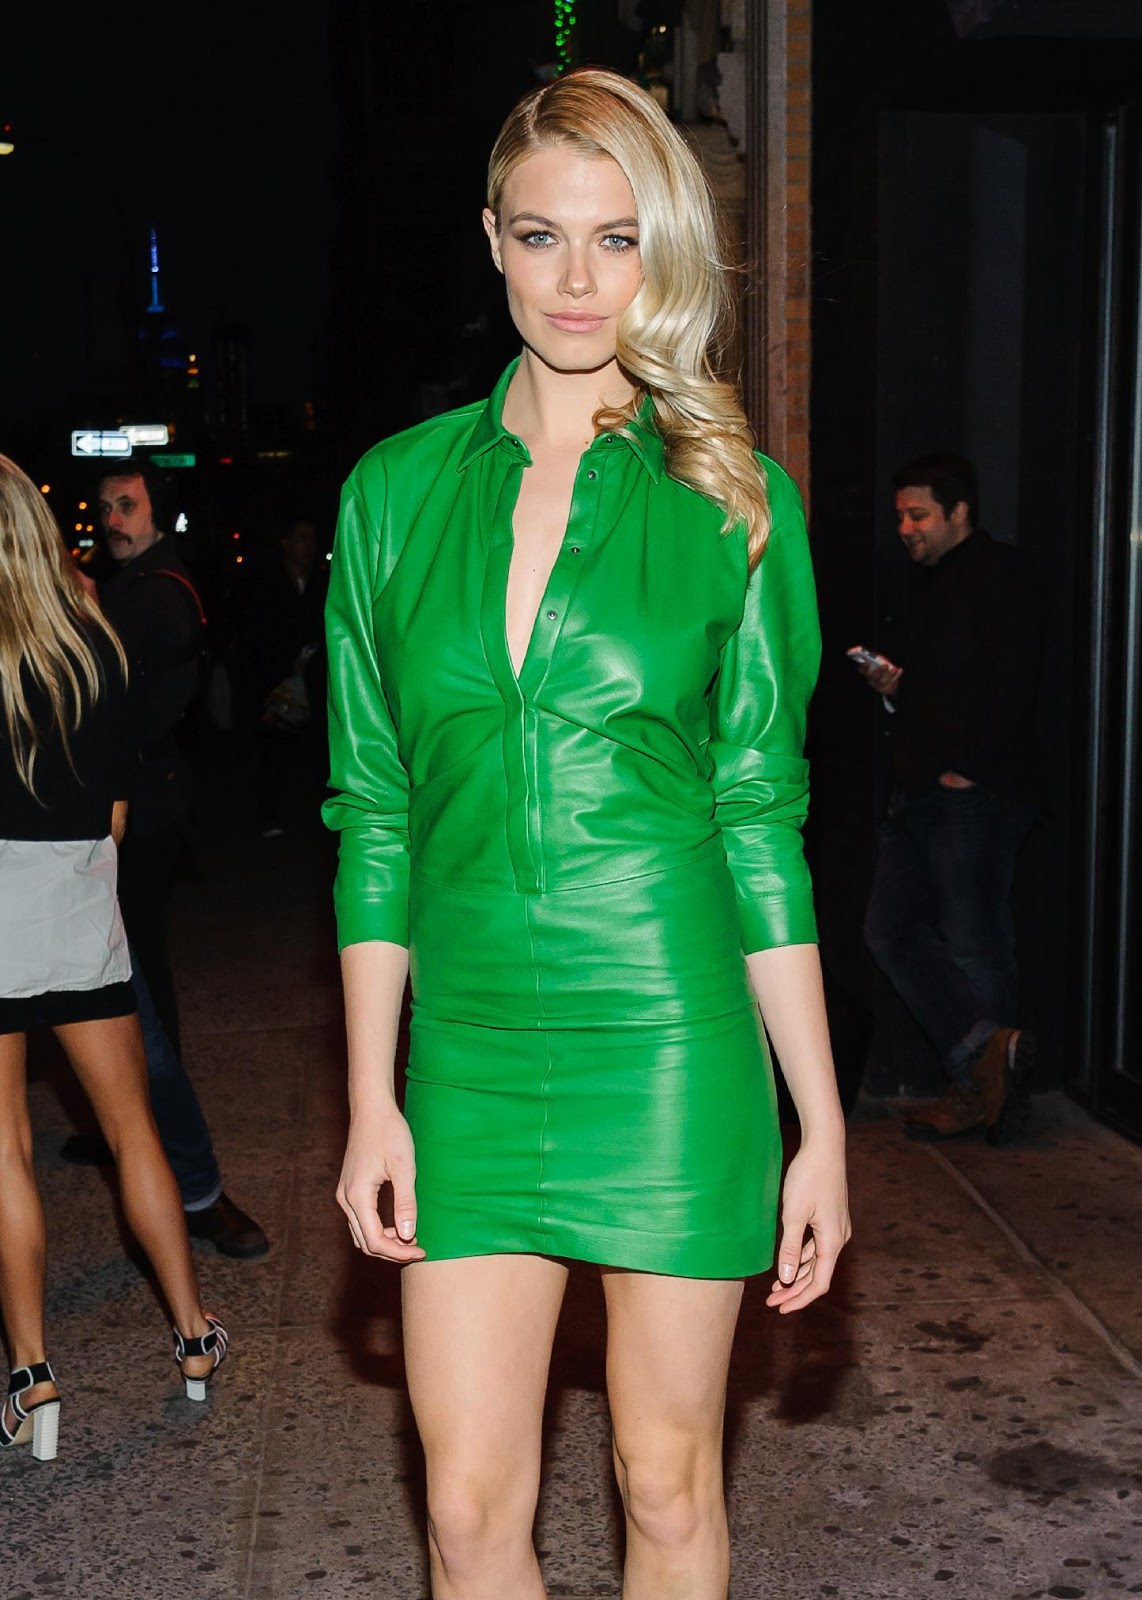 Green Leather Dresses